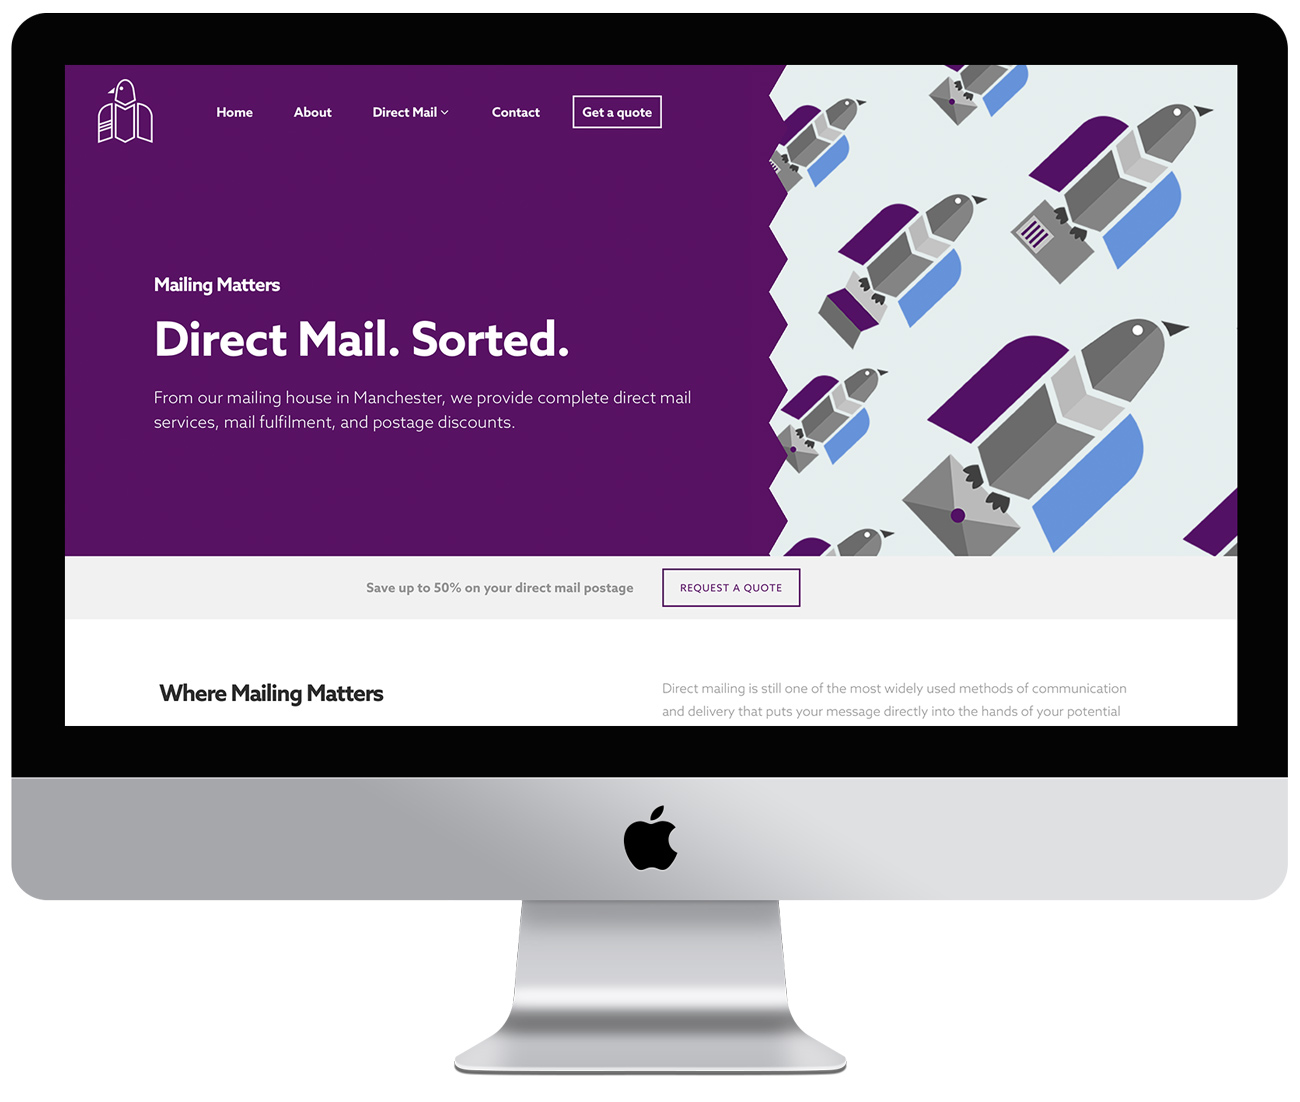 Mailing Matters' website development